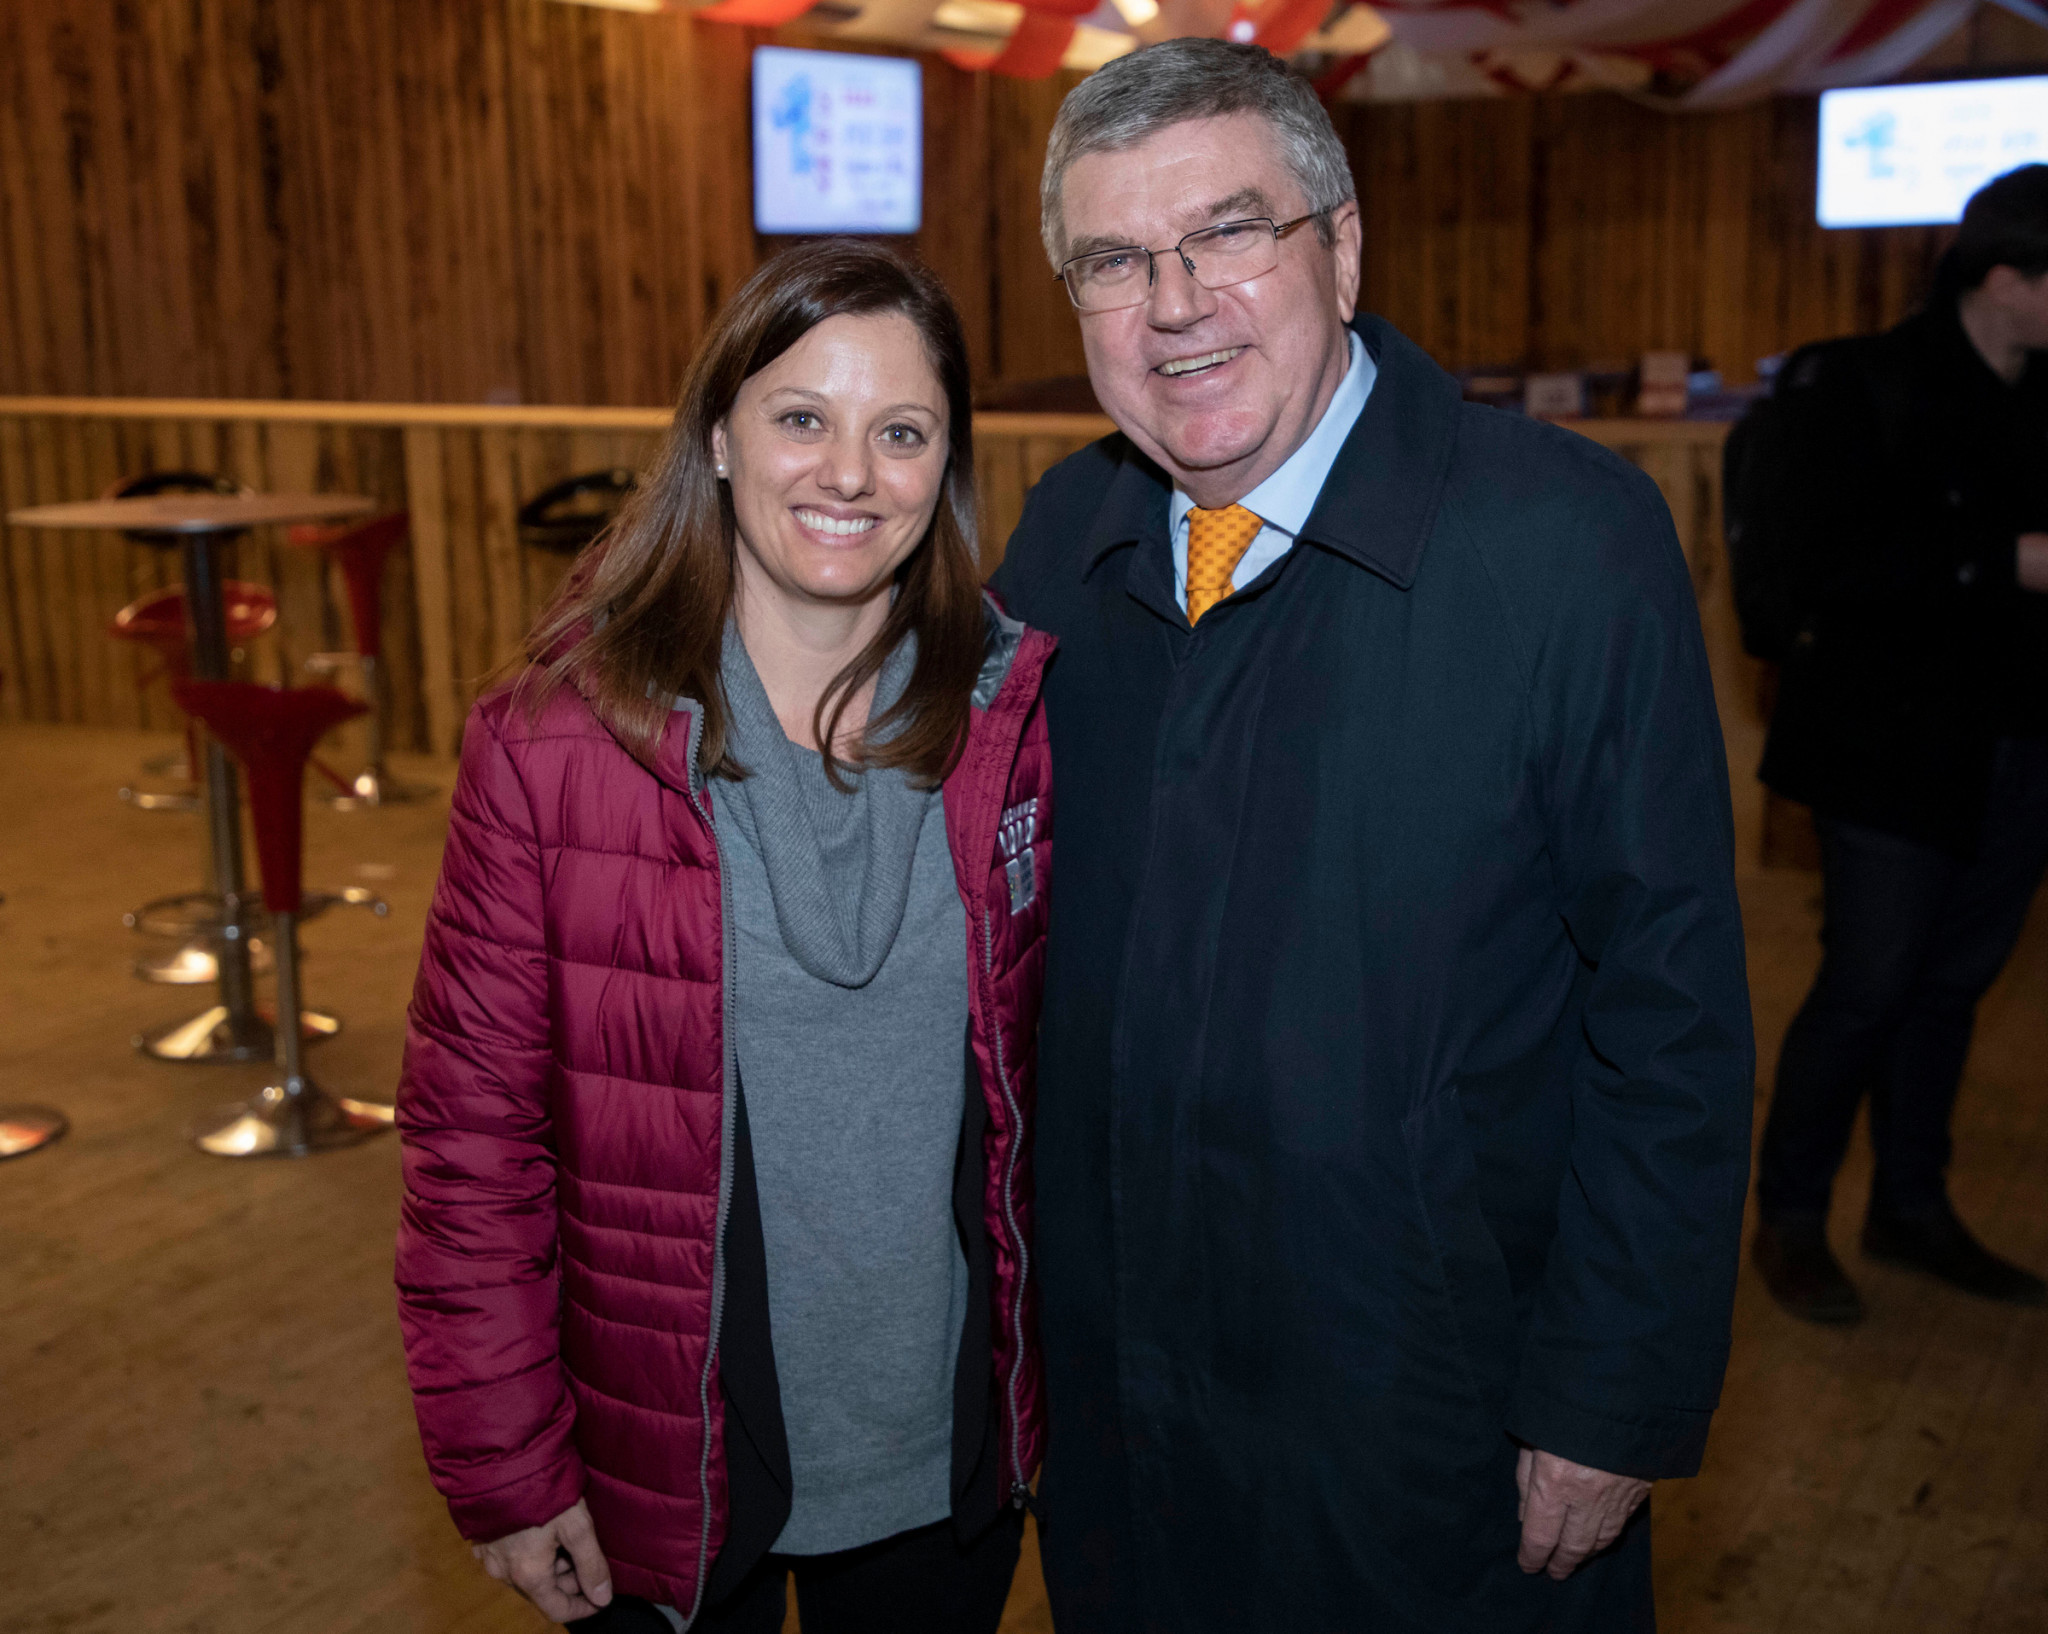 IOC President Thomas Bach met with Lausanne 2020 counterpart Virginie Faivre this week ©IOC